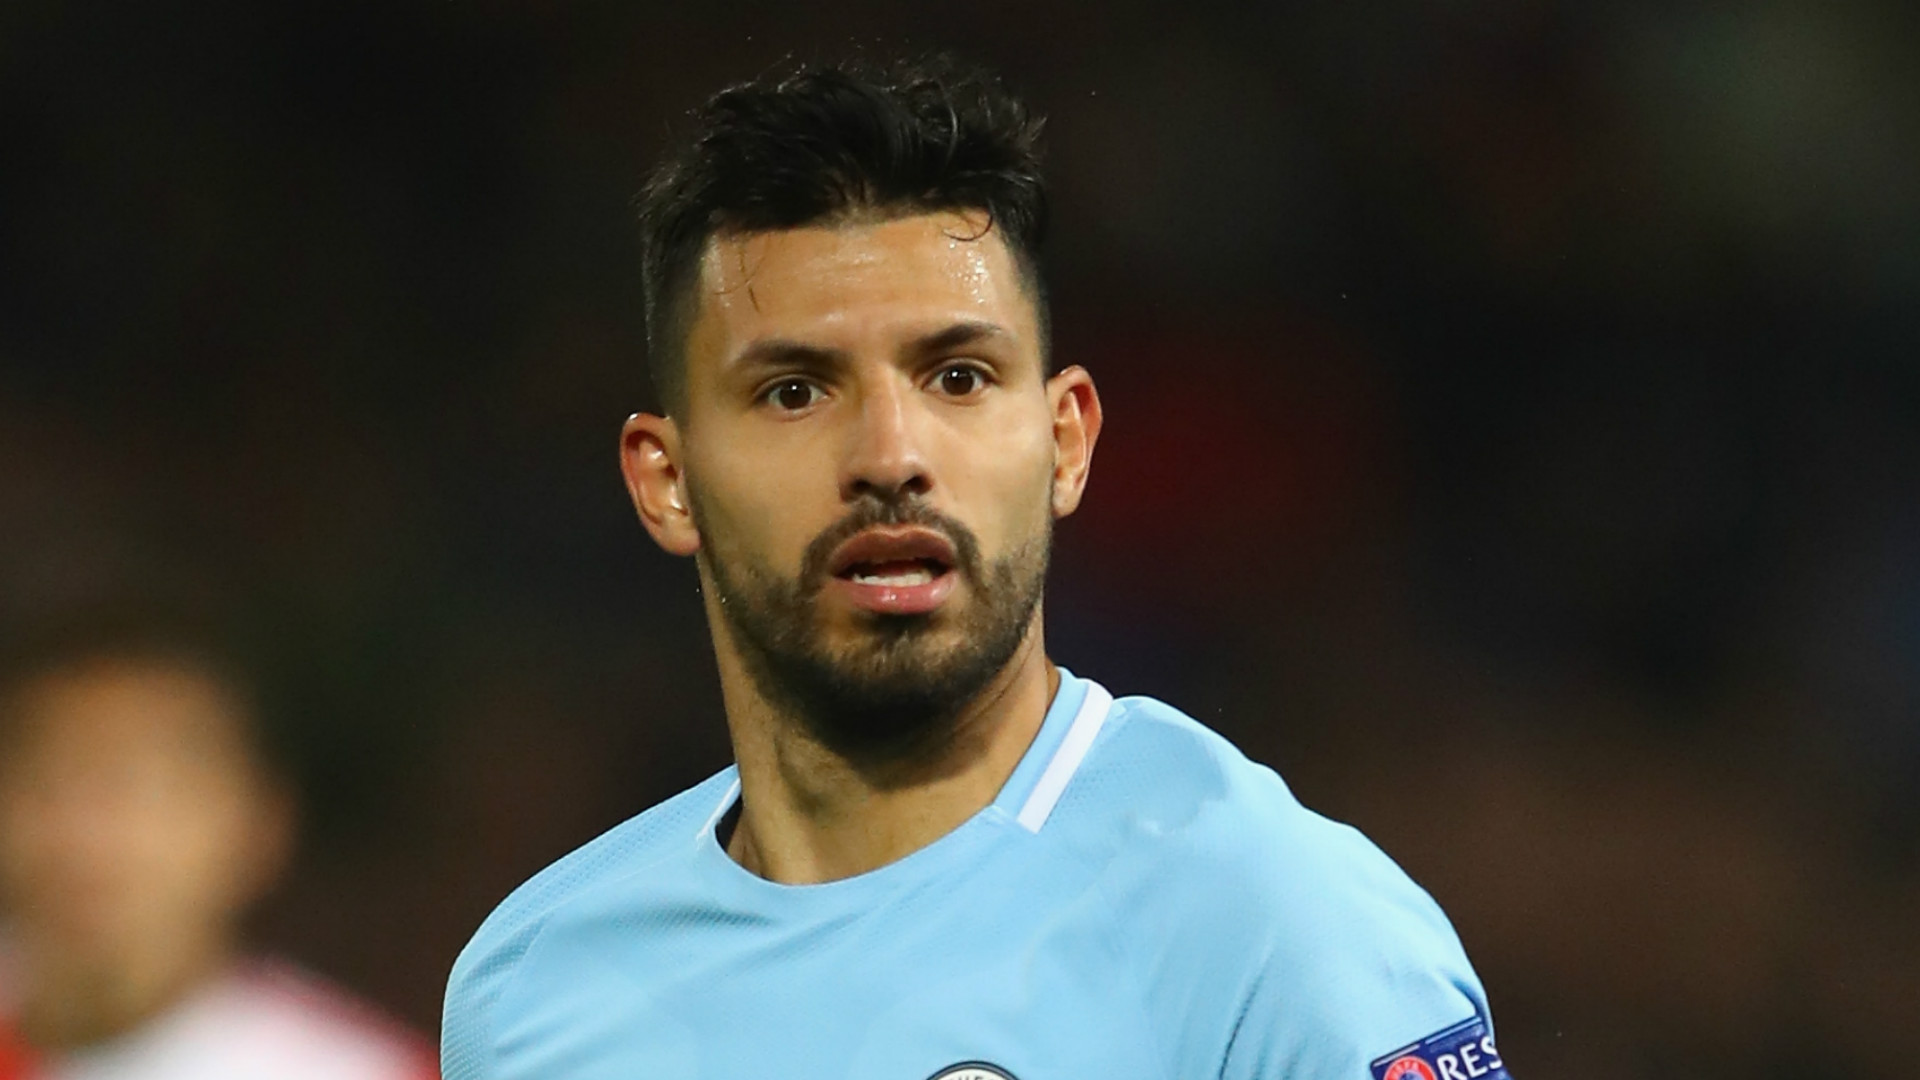 Manchester City striker Sergio Aguero breaks rib in Amsterdam auto crash